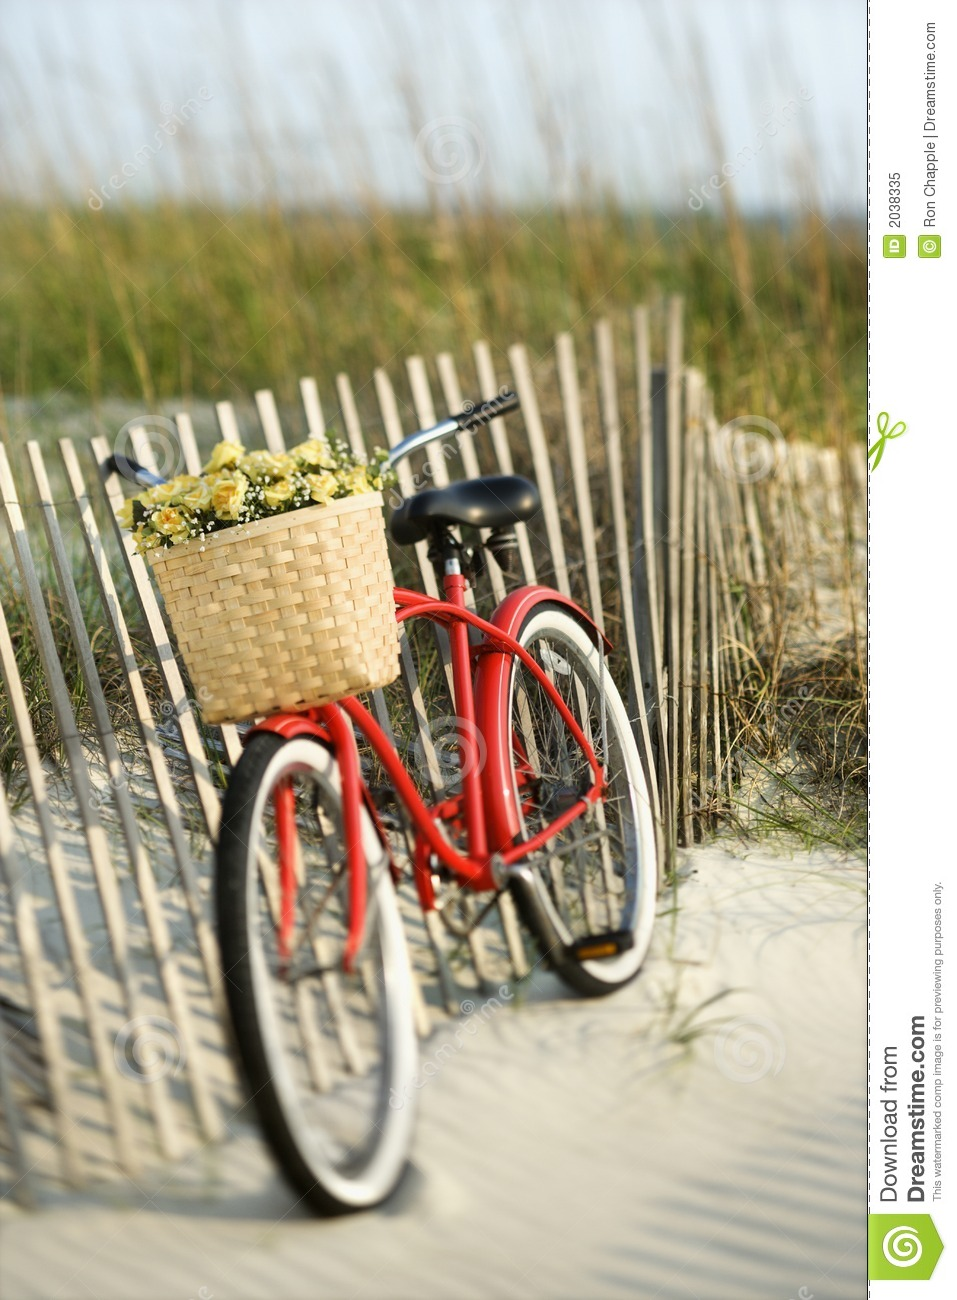 the bike chair satin sashes leaning against fence at beach. royalty free stock photo - image: 2038335